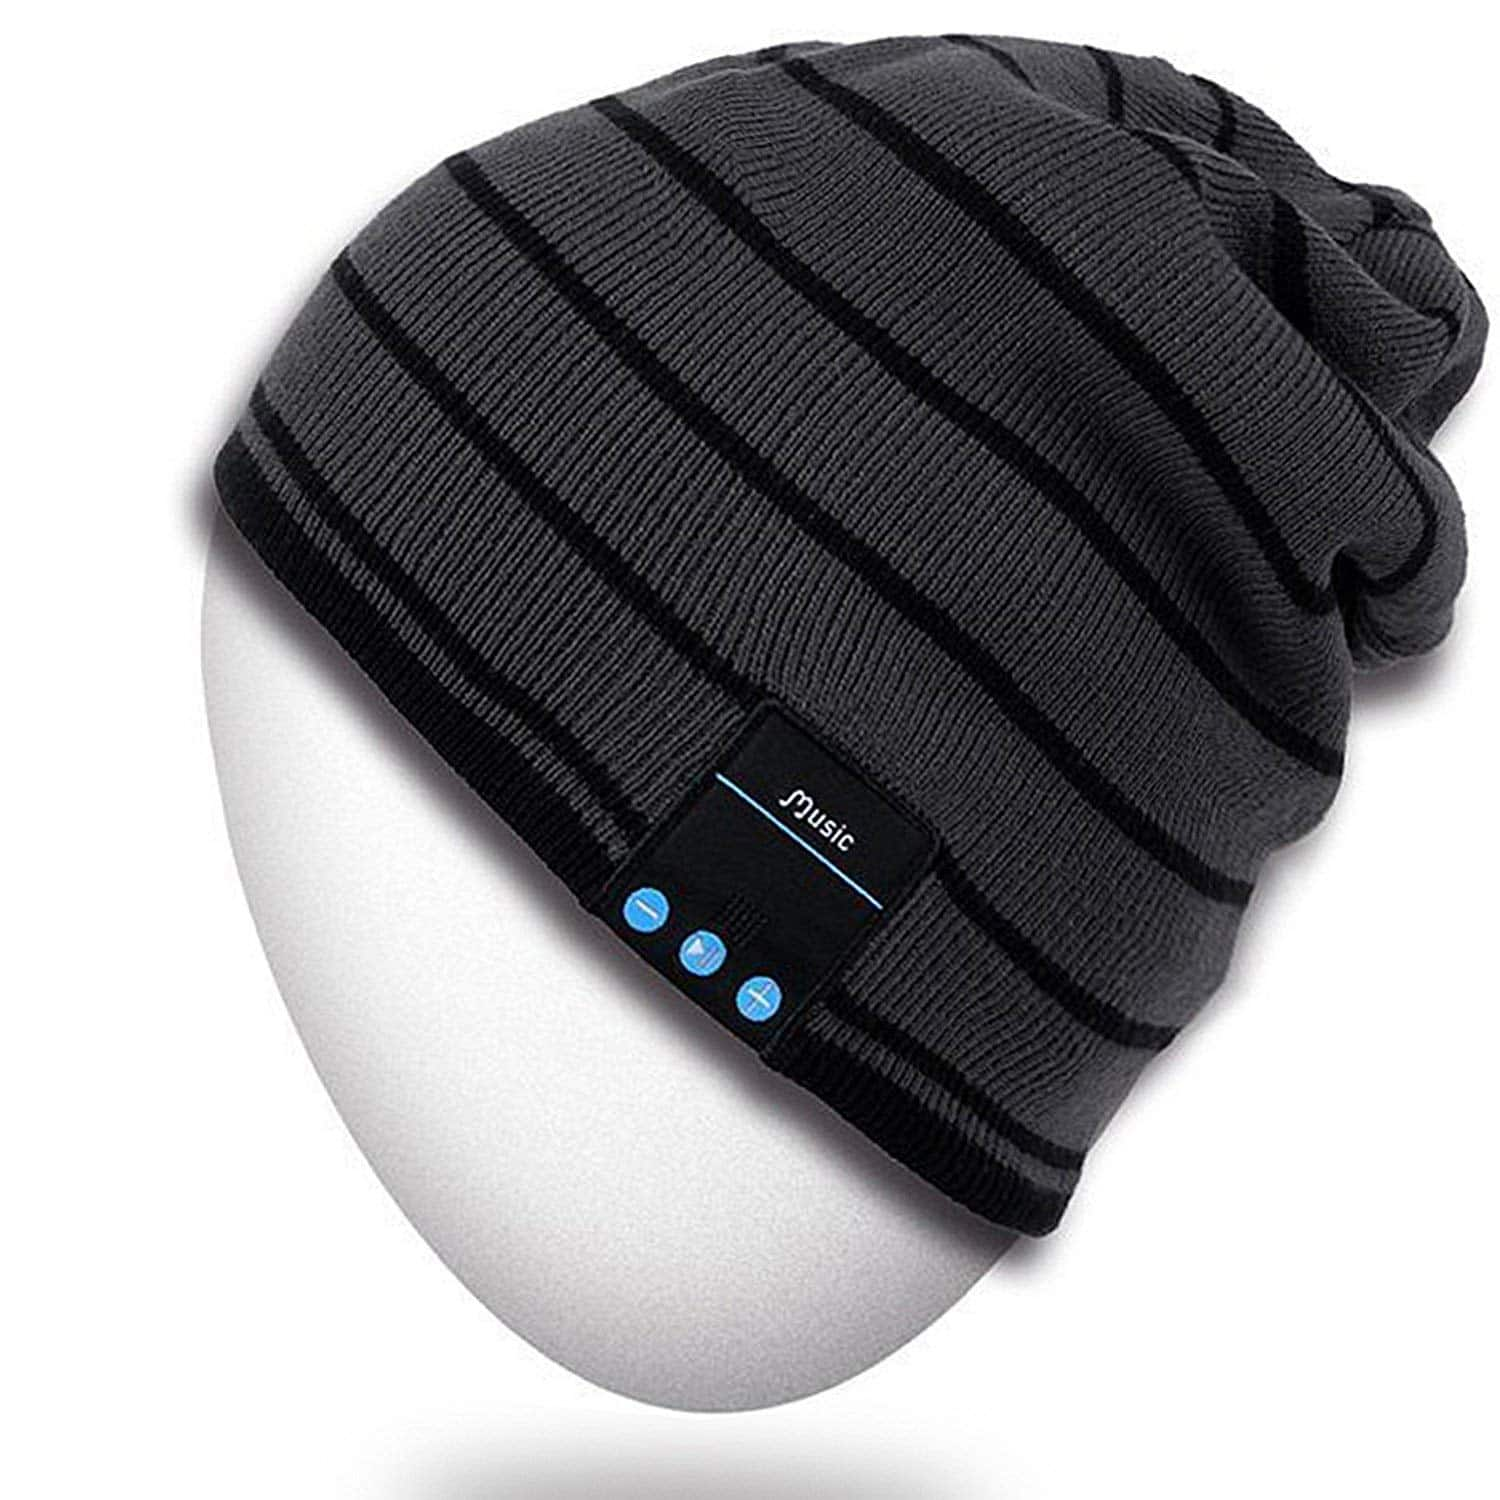 Bluetooth Beanie Hat - Outdoor Premium Knit Cap with Wireless Stereo  Headphone 4c65f6913f12